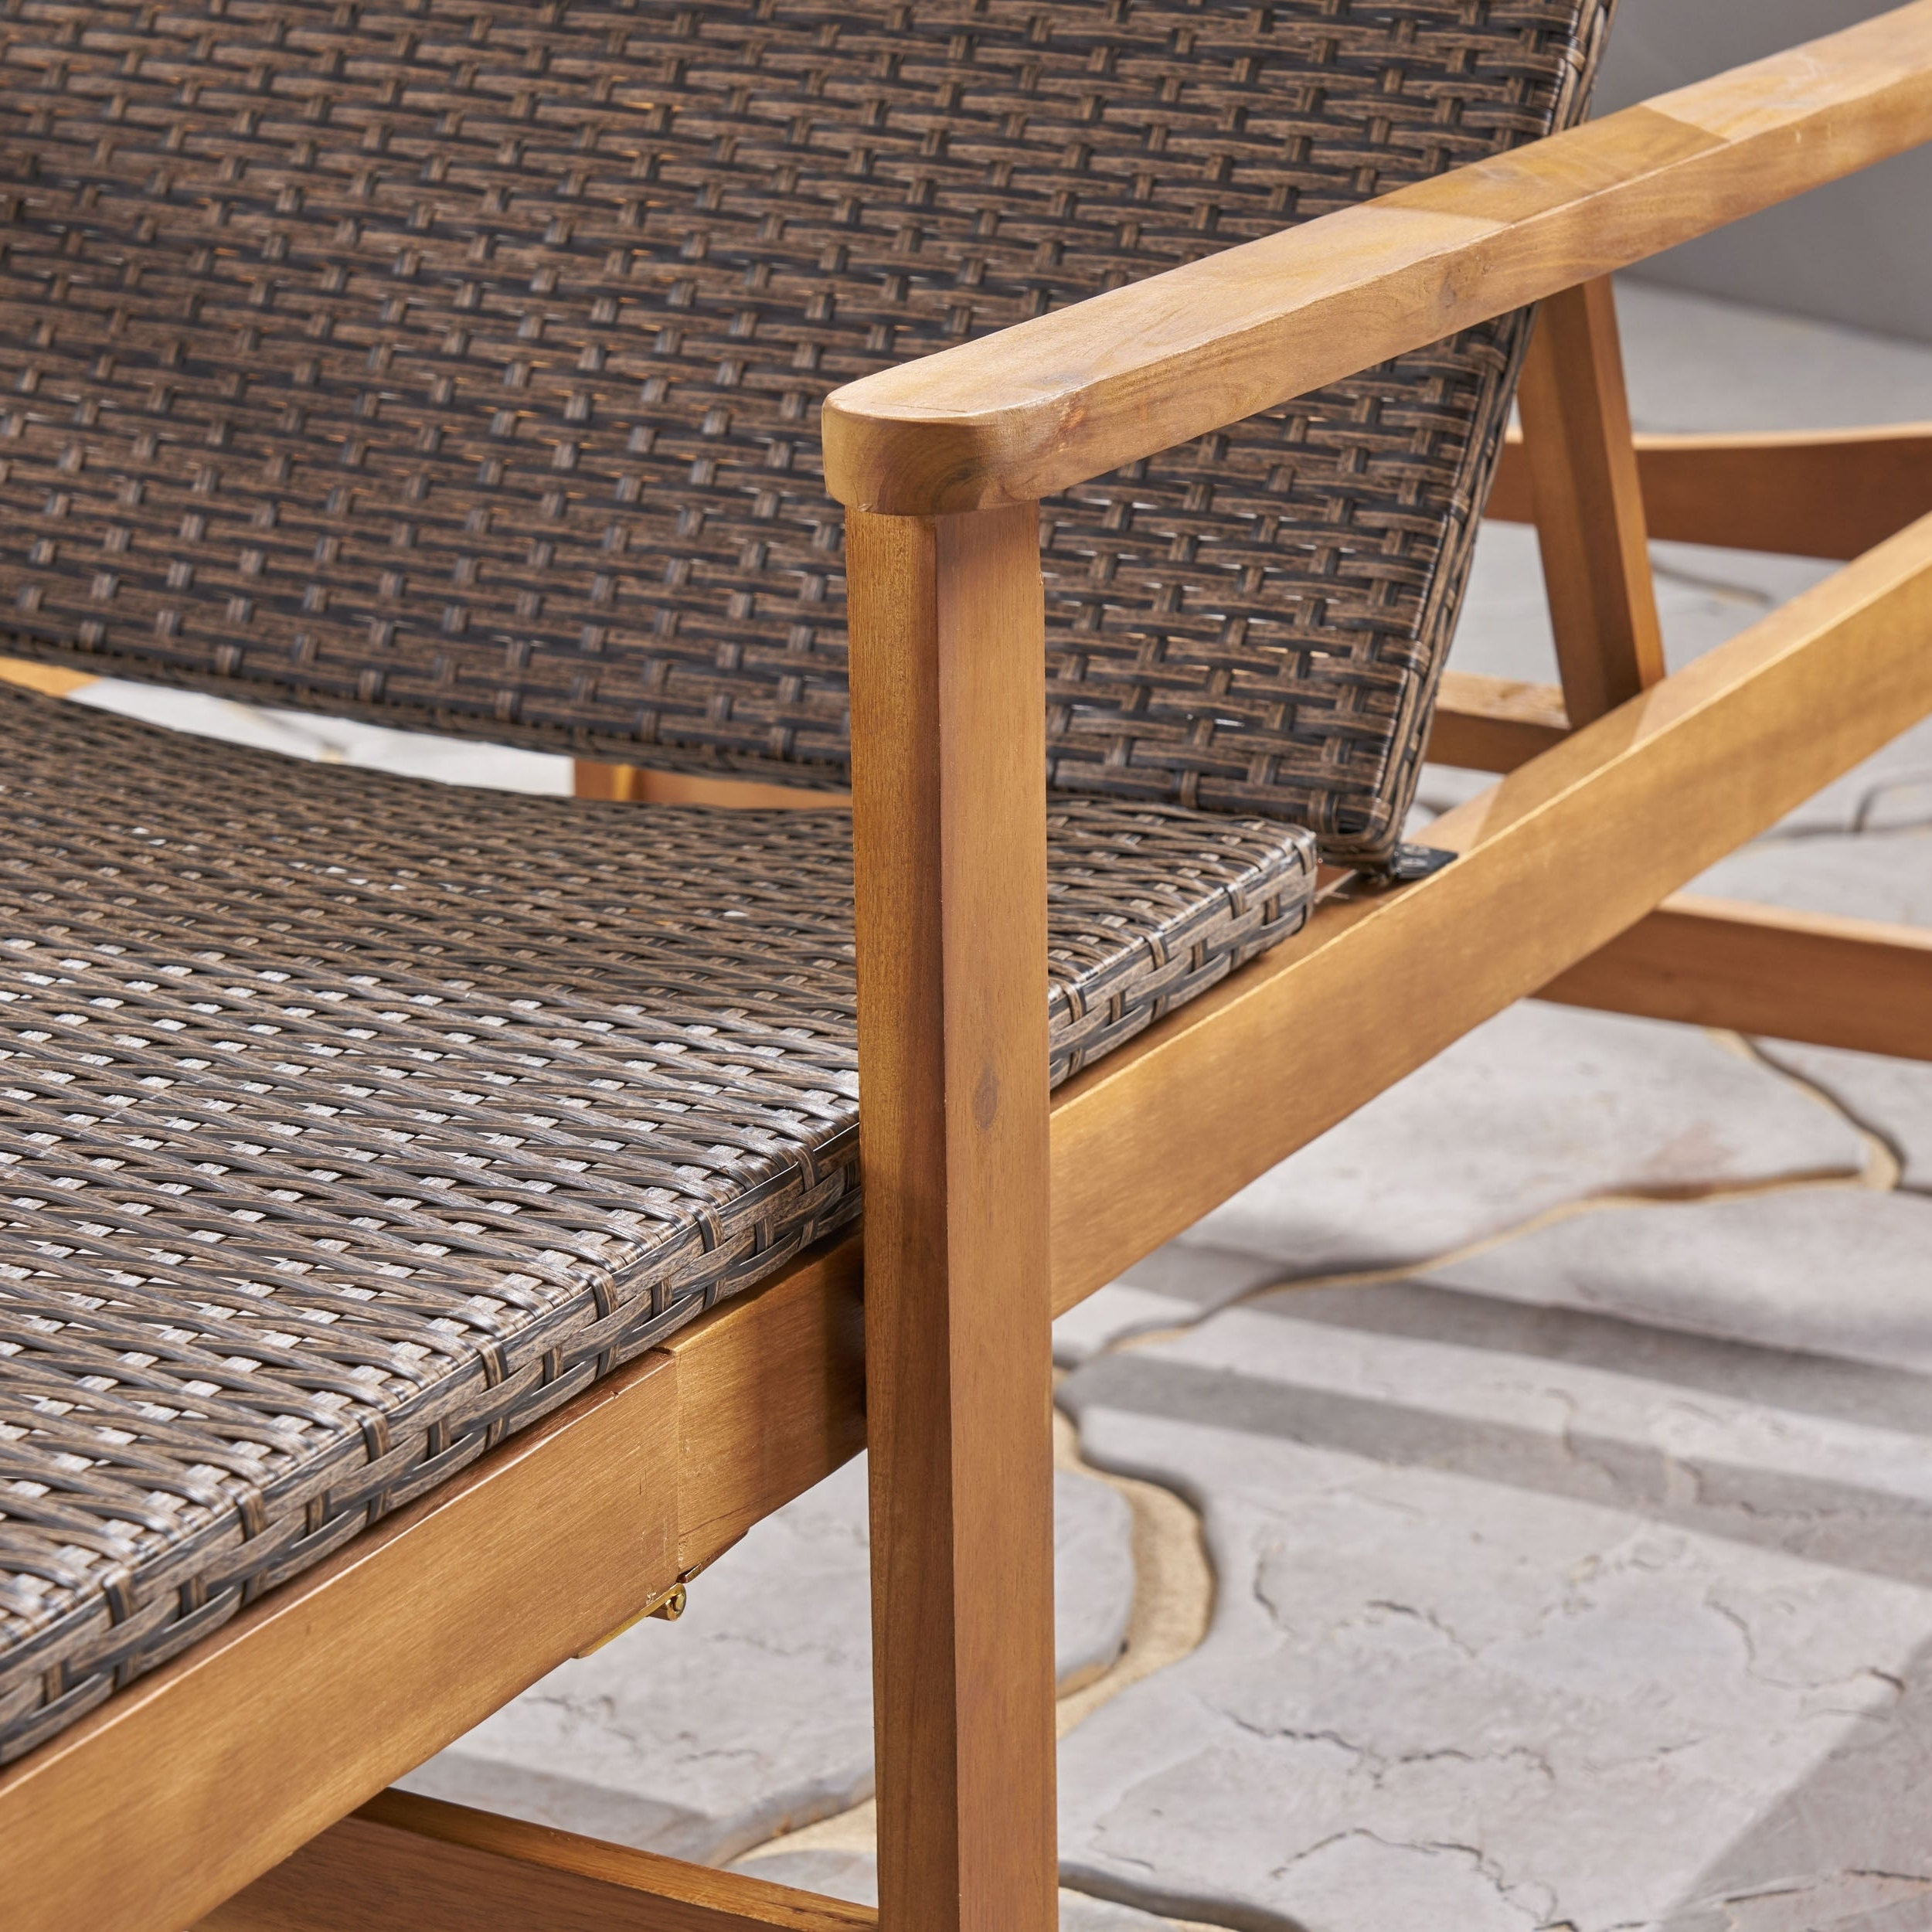 Details About Hampton Outdoor Rustic Acacia Wood Chaise Lounge With Wicker With Regard To Popular Outdoor Rustic Acacia Wood Chaise Lounges With Wicker Seats (View 8 of 25)